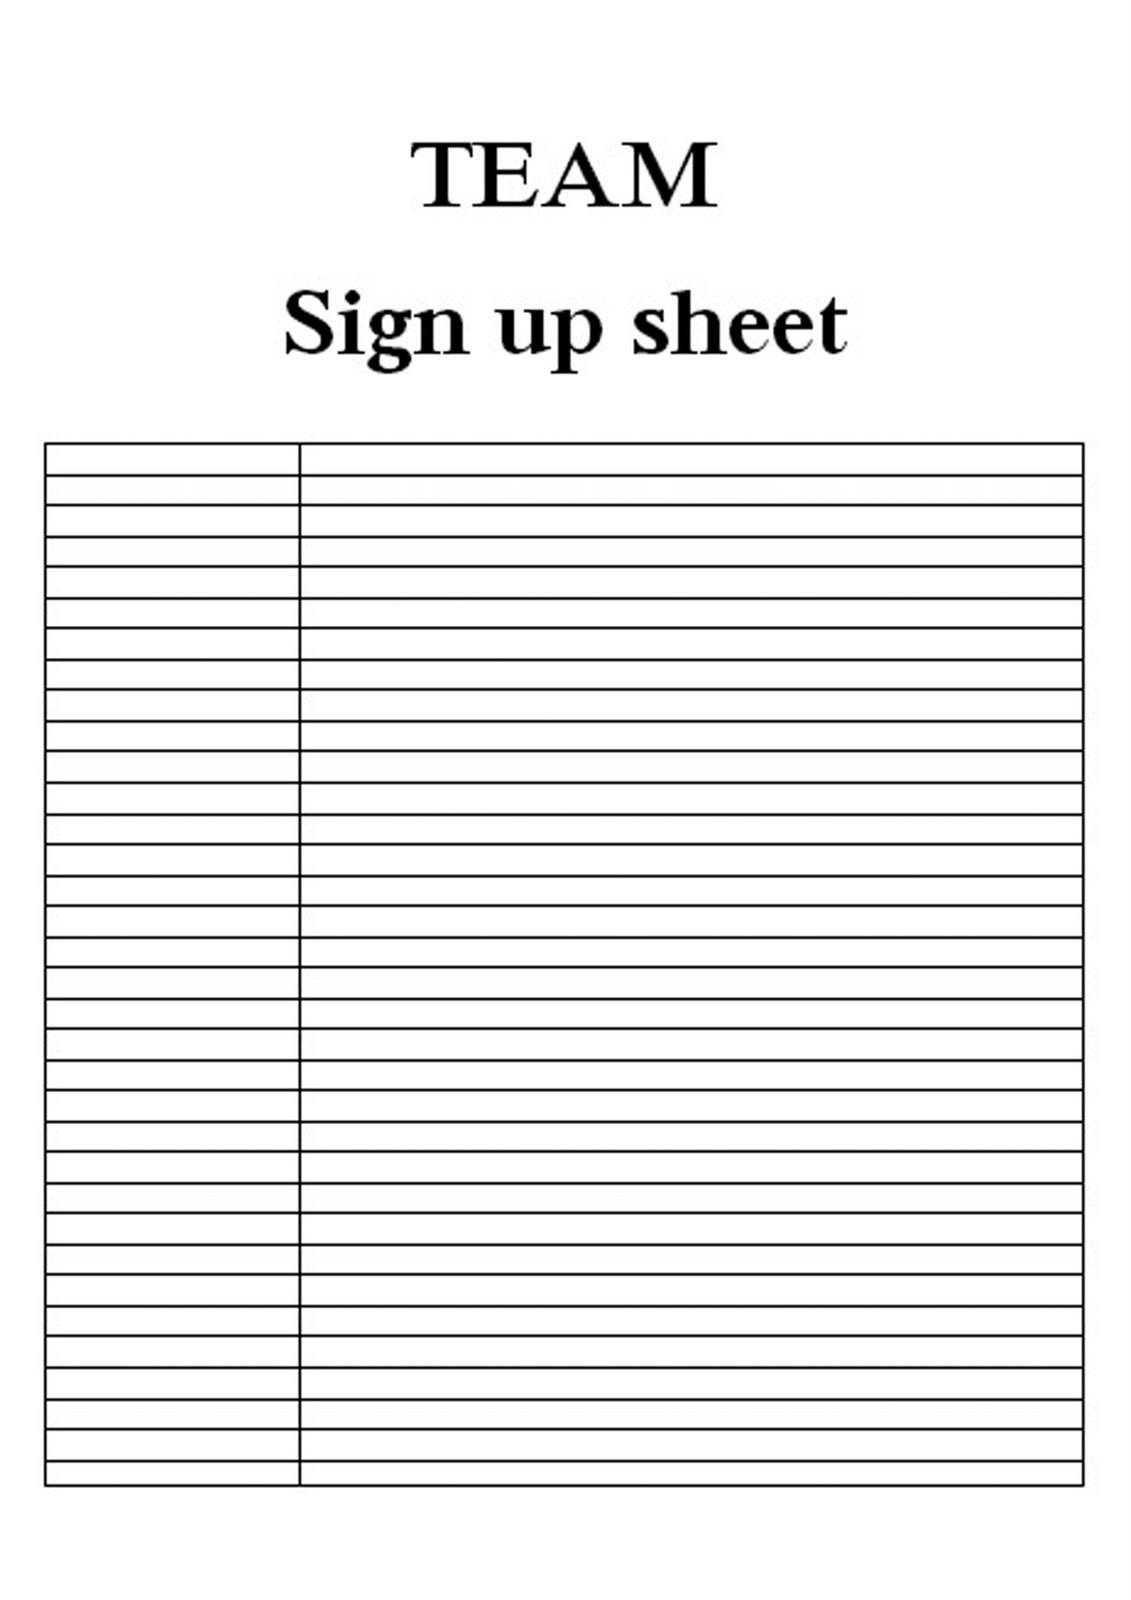 Old Fashioned image in printable sign up sheets